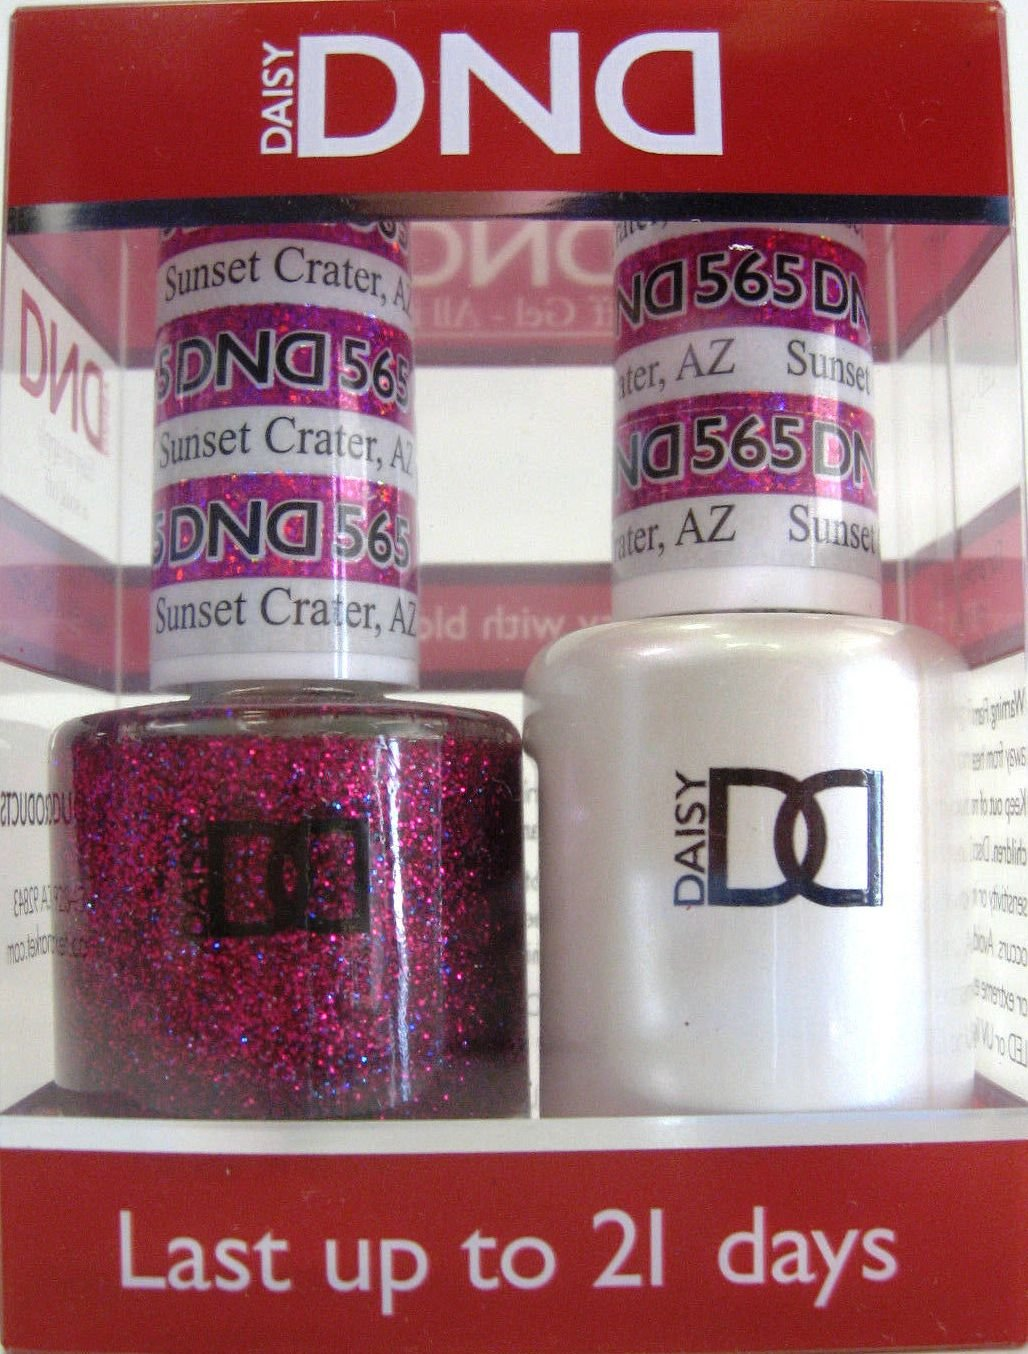 Amazon.com : Daisy DND - Gelcolor and Matching Nail Polish color set ...